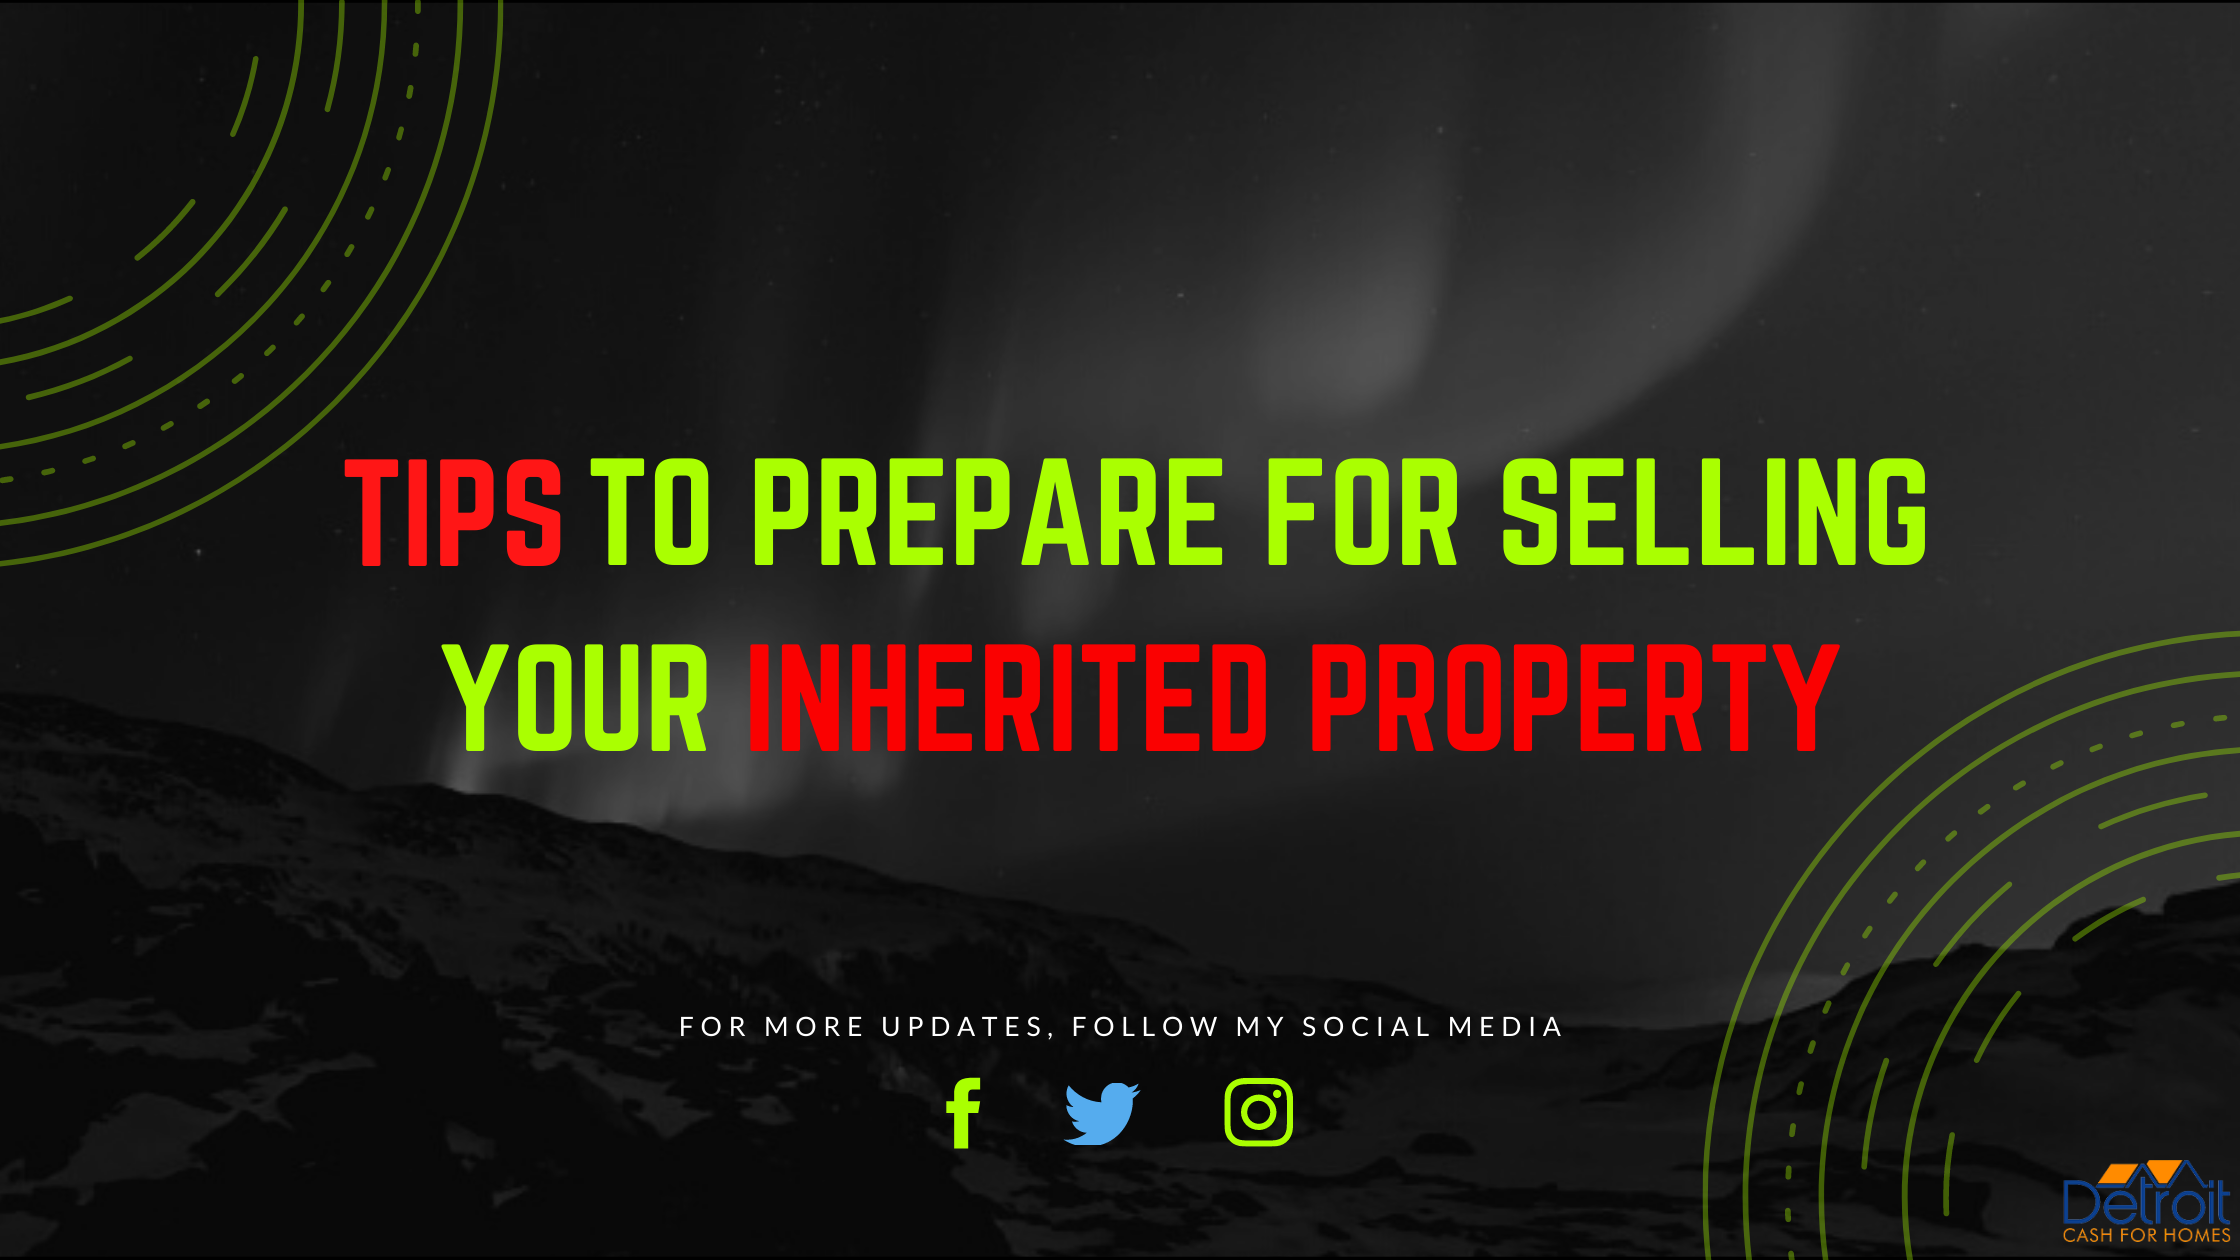 Tips To Prepare For Selling Your Inherited Property